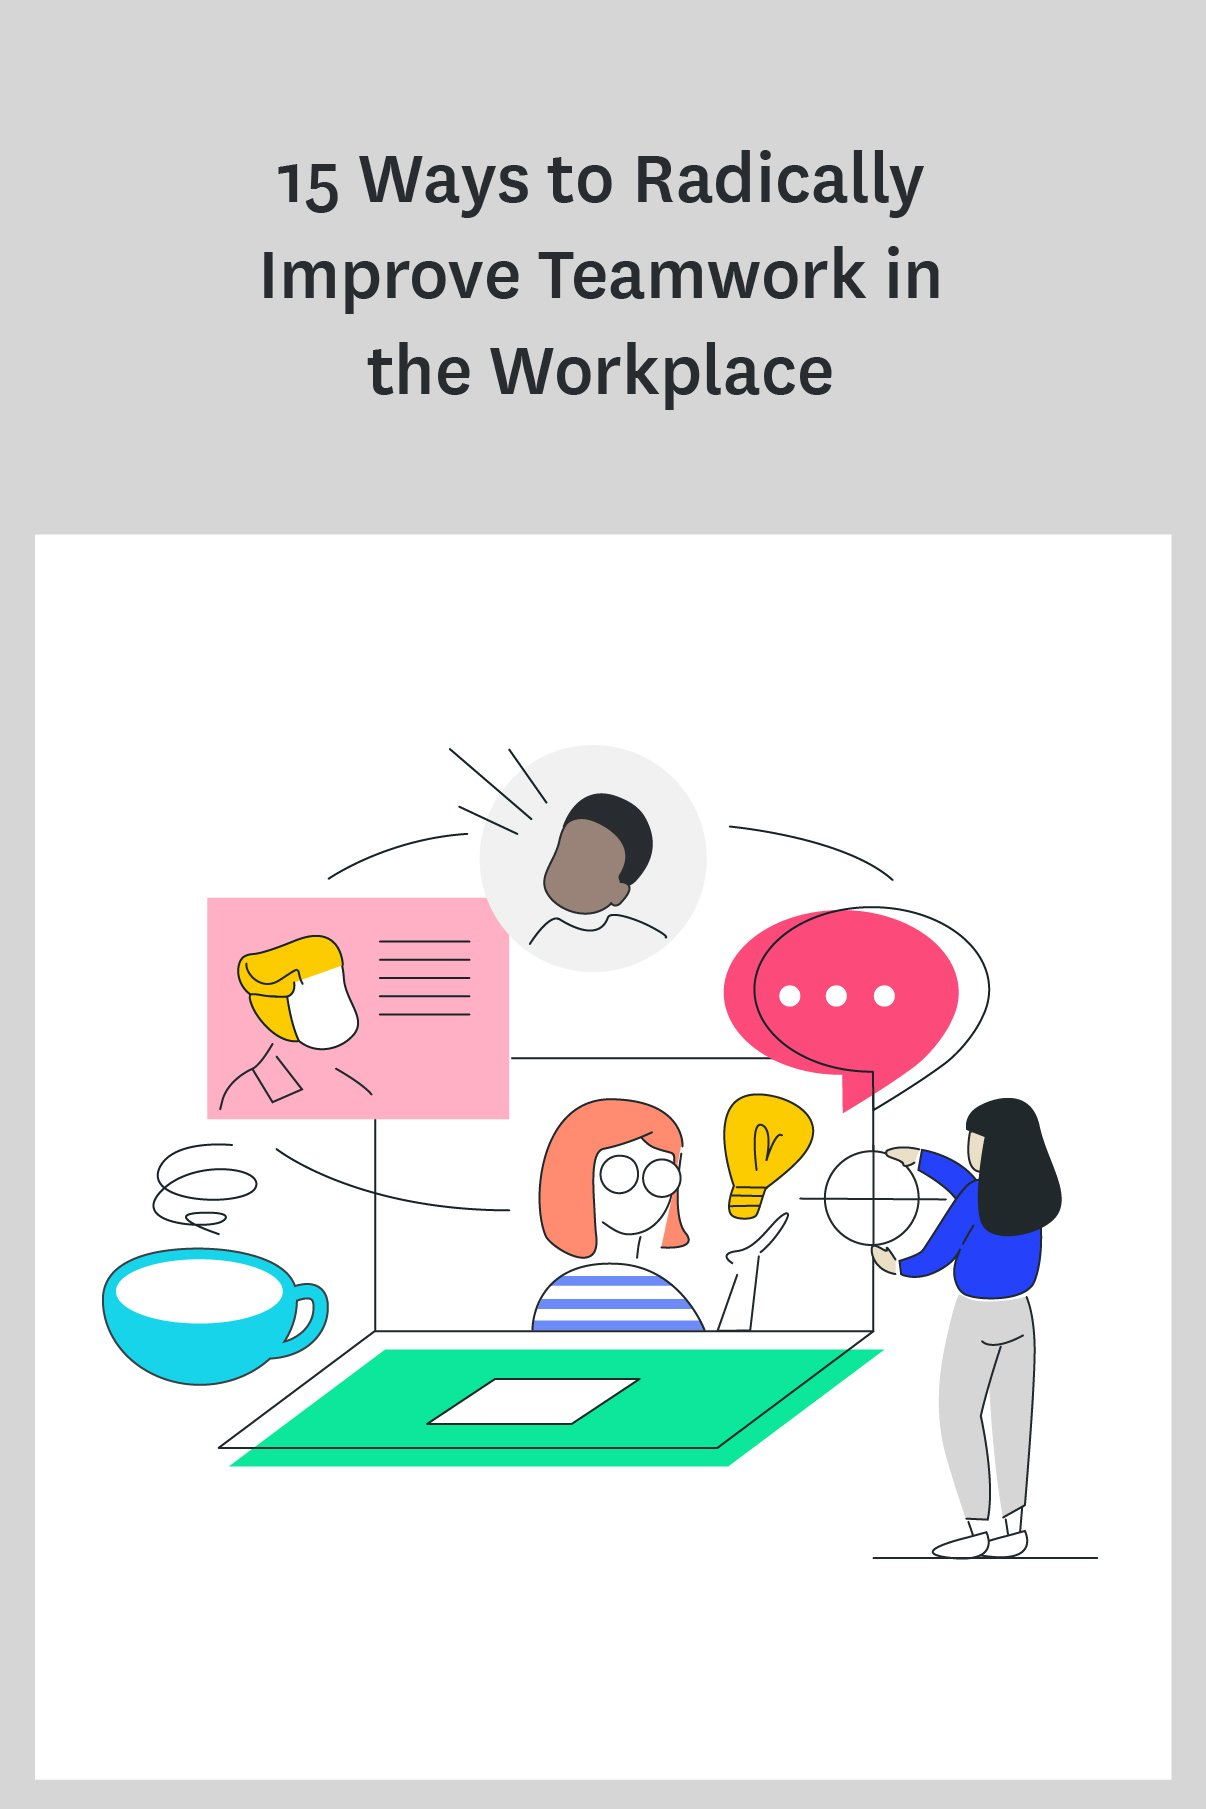 Teamwork makes the dream work, right? But seriously, if you want to improve your team's productivity and satisfaction at work, you need to improve teamwork in the workplace. Here's tips to try now! #teamwork #work #productivity #managertips